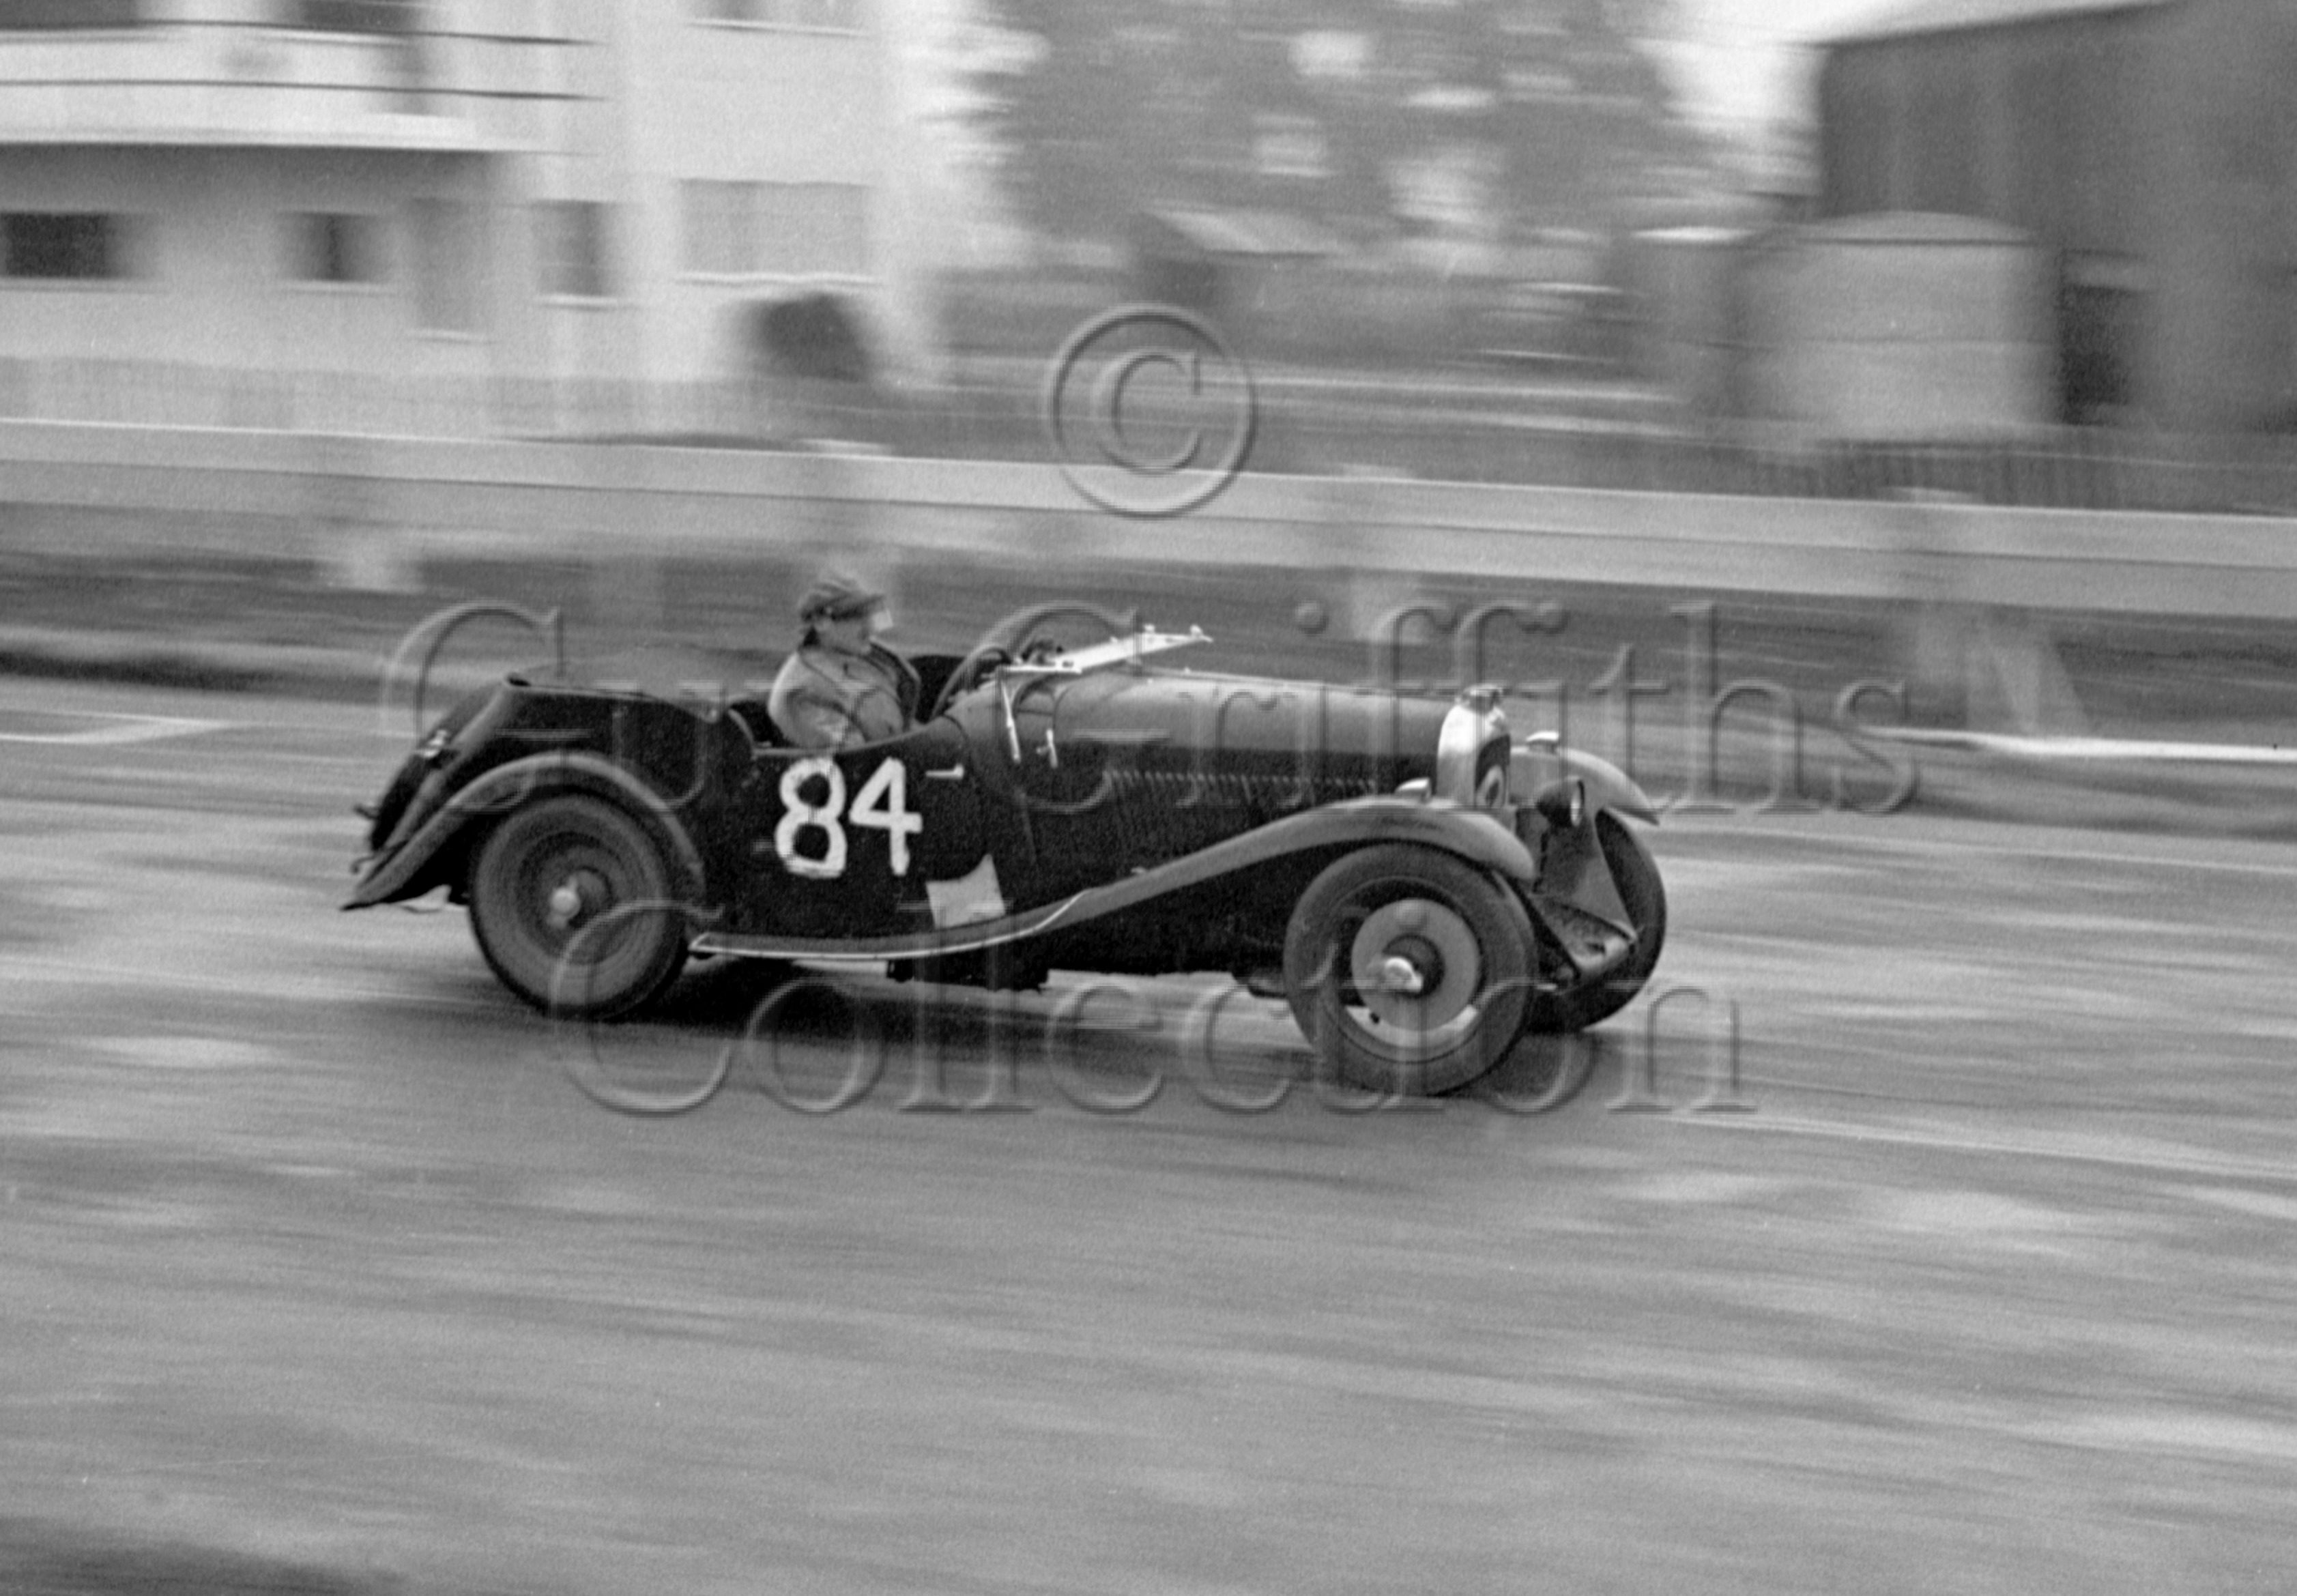 29-394–H-Lumb–Rapier–Goodwood–06-05-1950.jpg - The Guy Griffiths Collection